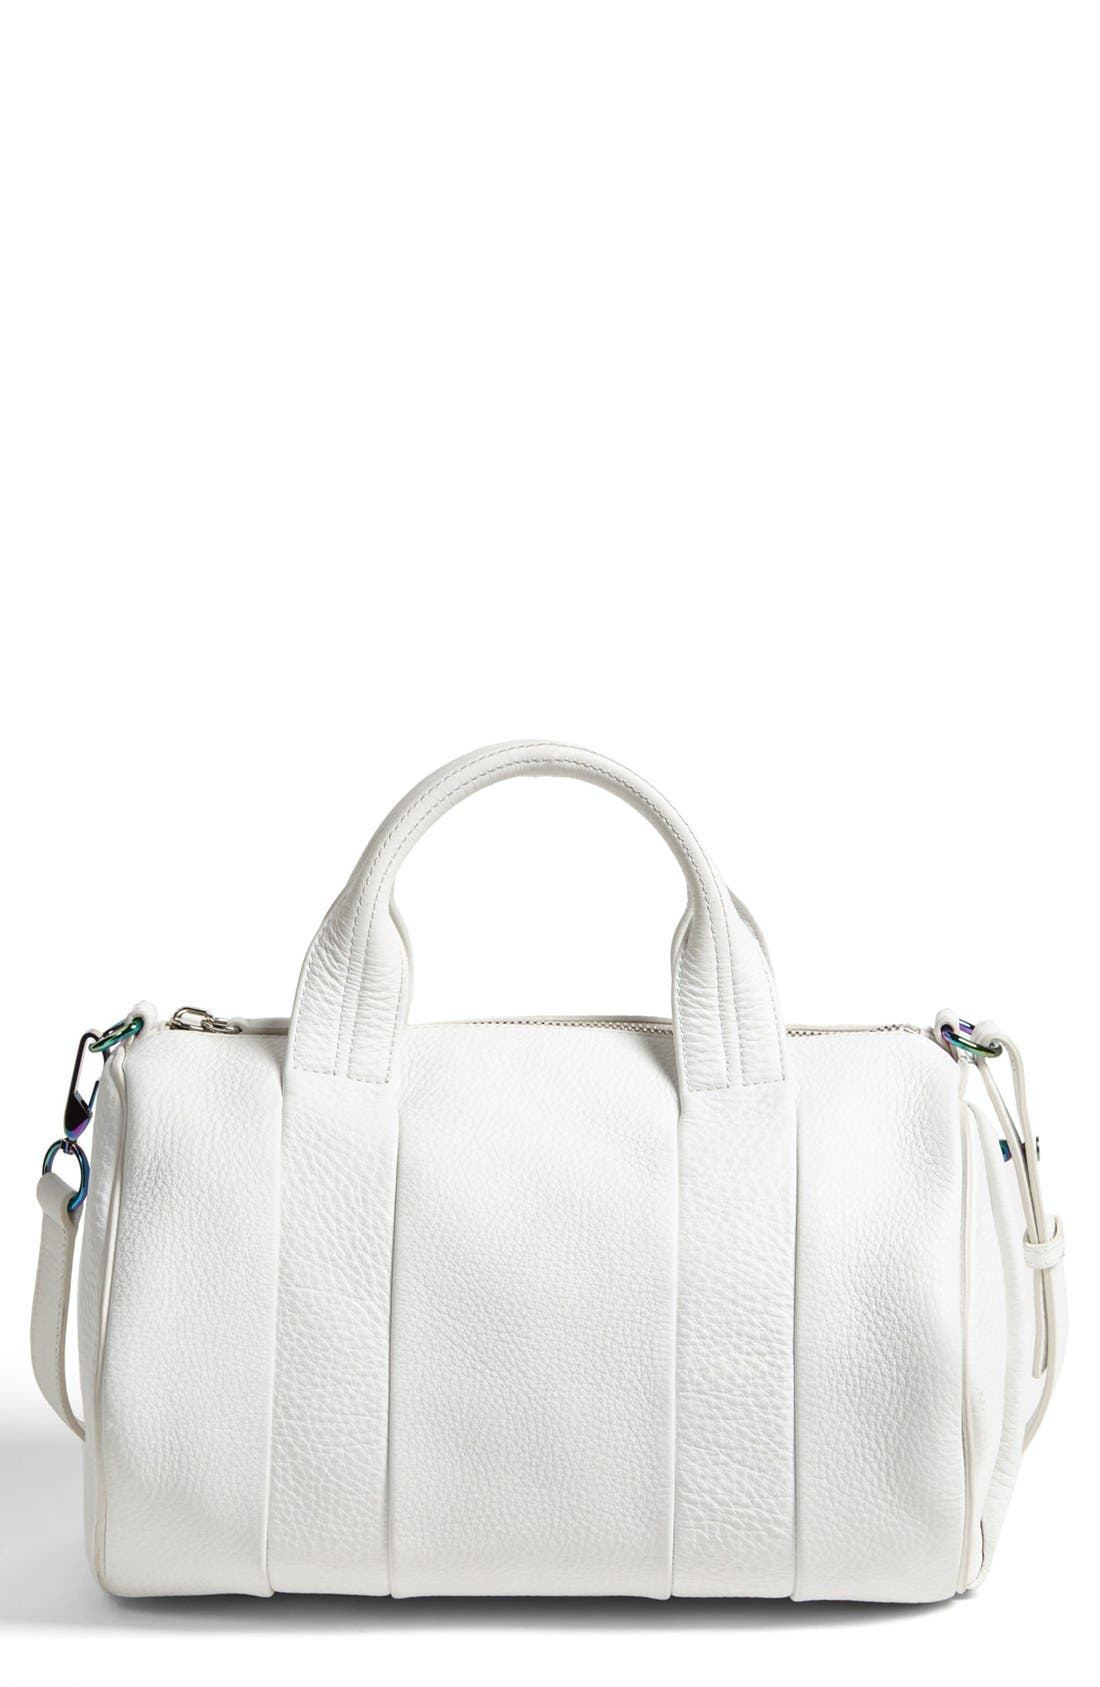 Main Image - Alexander Wang 'Rocco - Iridescent' Leather Satchel